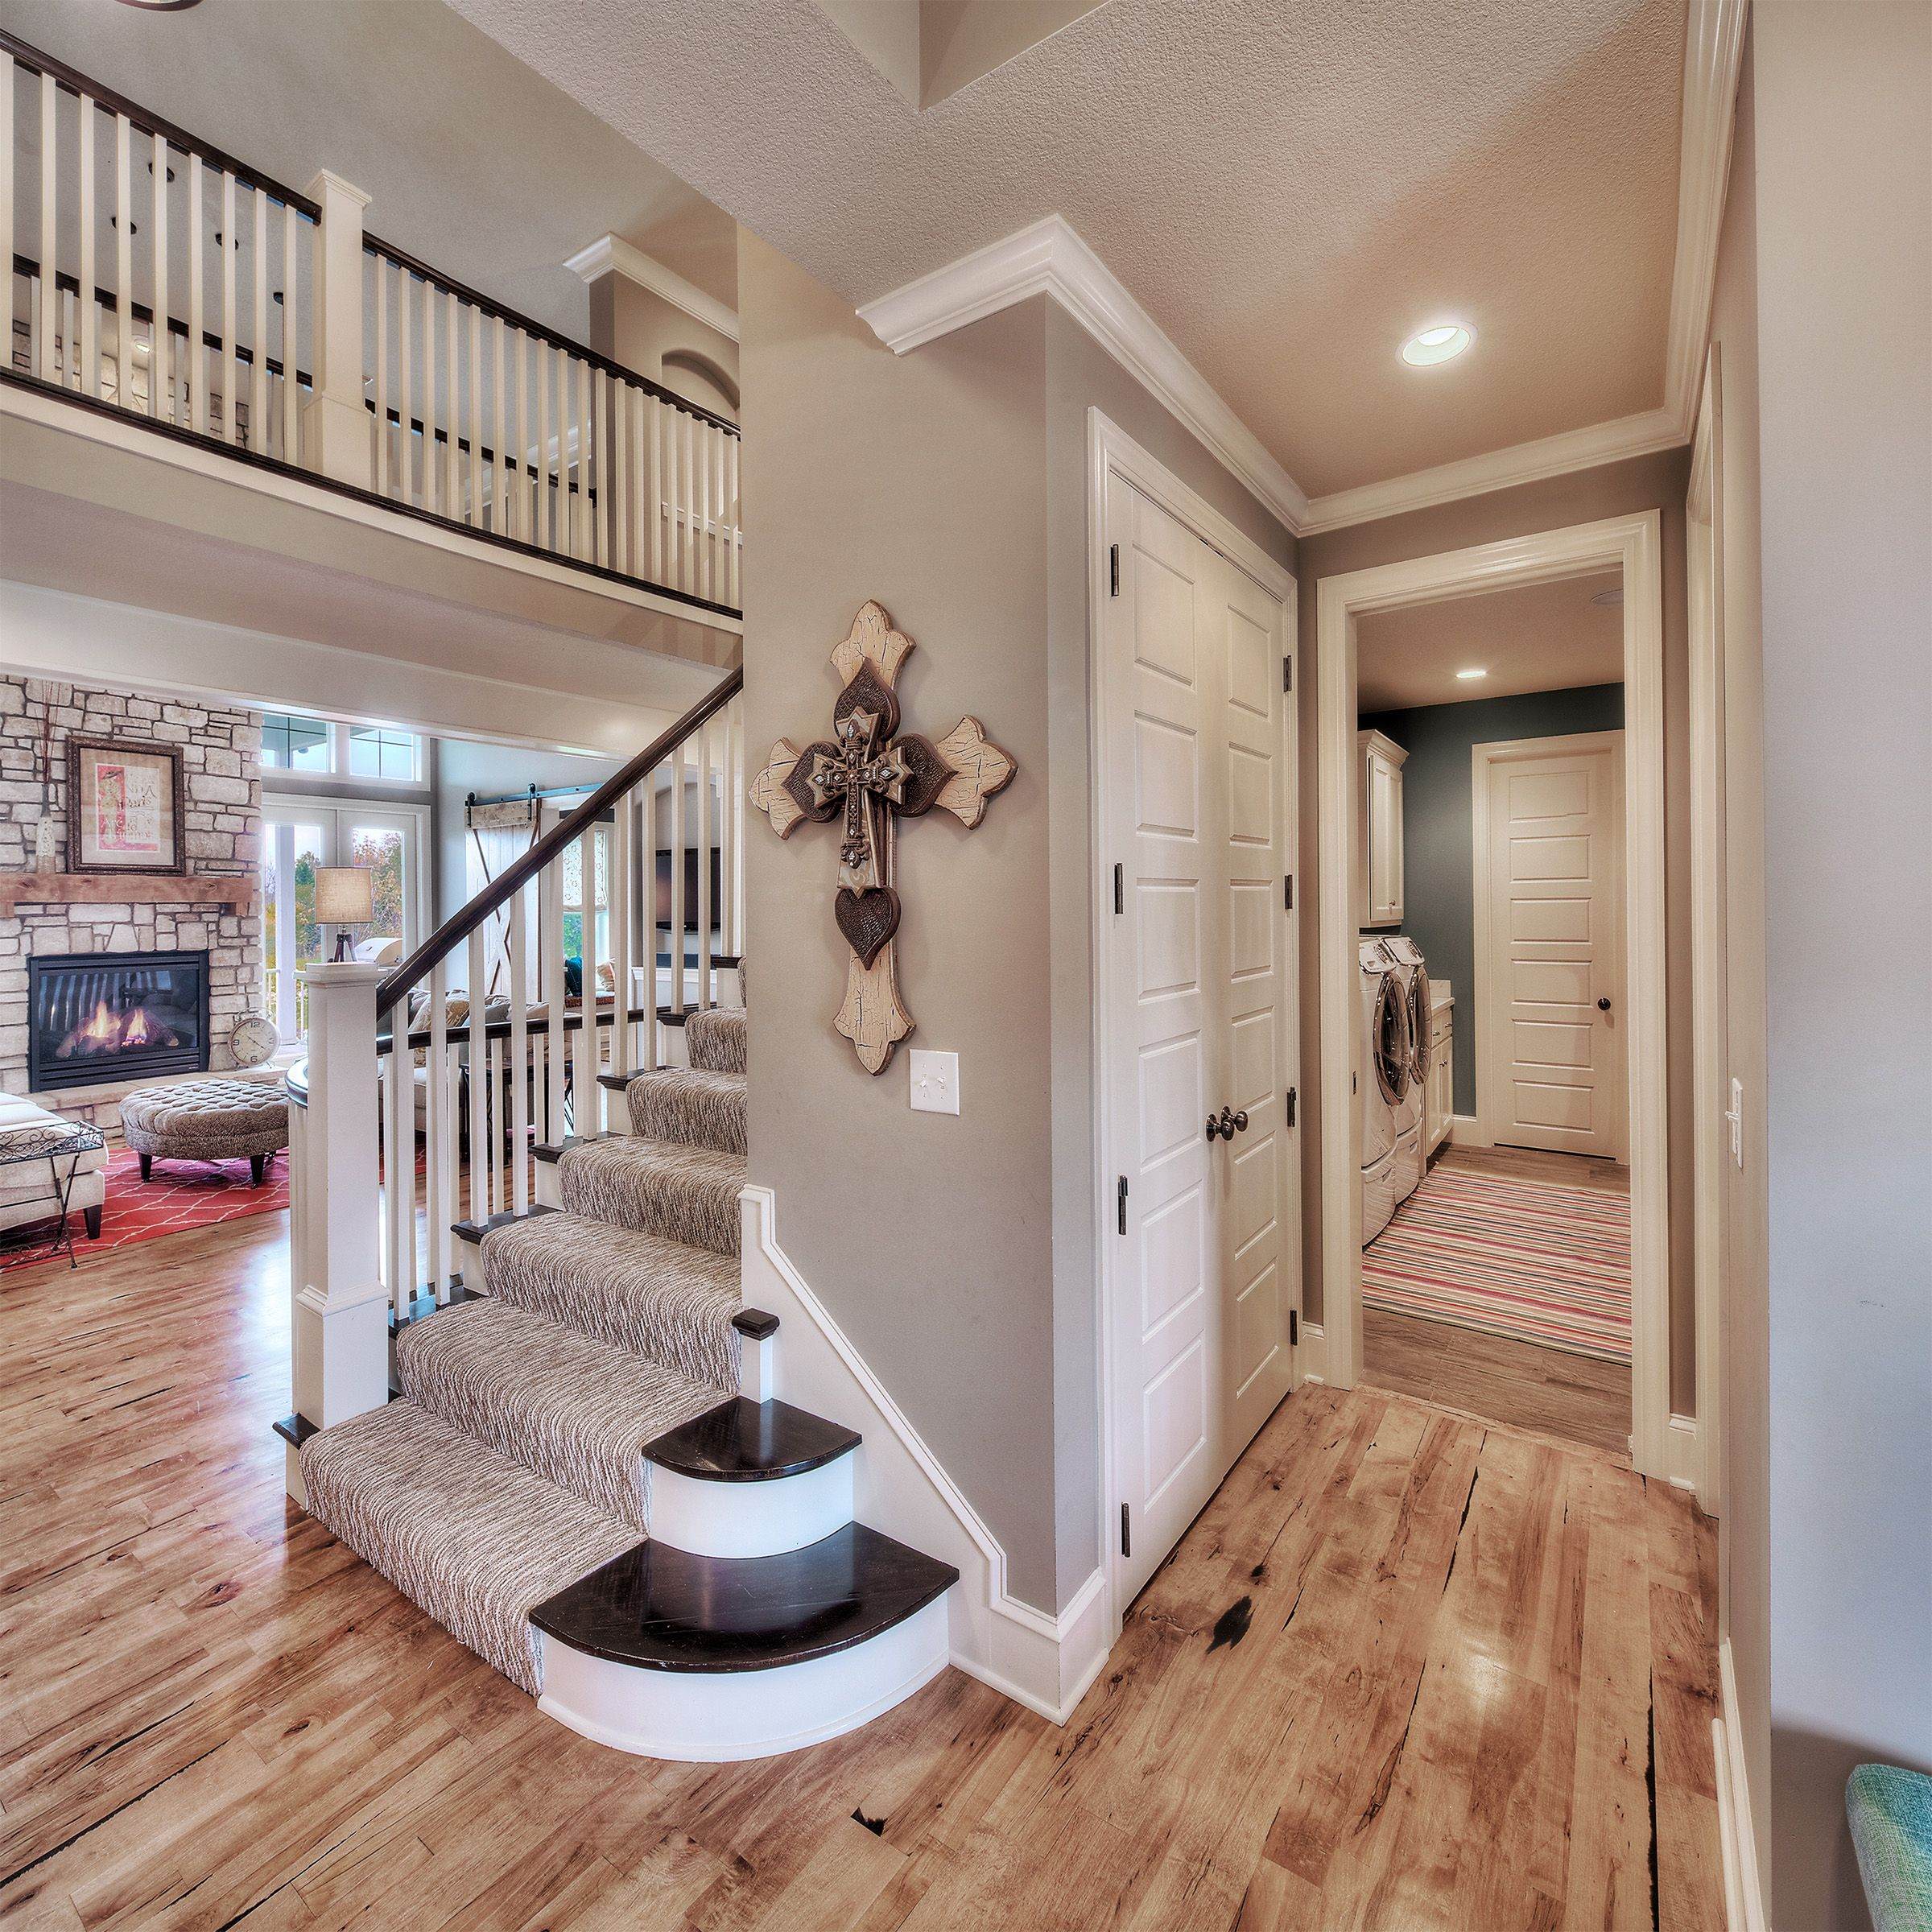 Hardwood Floors In Half Bathroom: Entry: Front Access To Laundry Room, Lots Of Storage Space